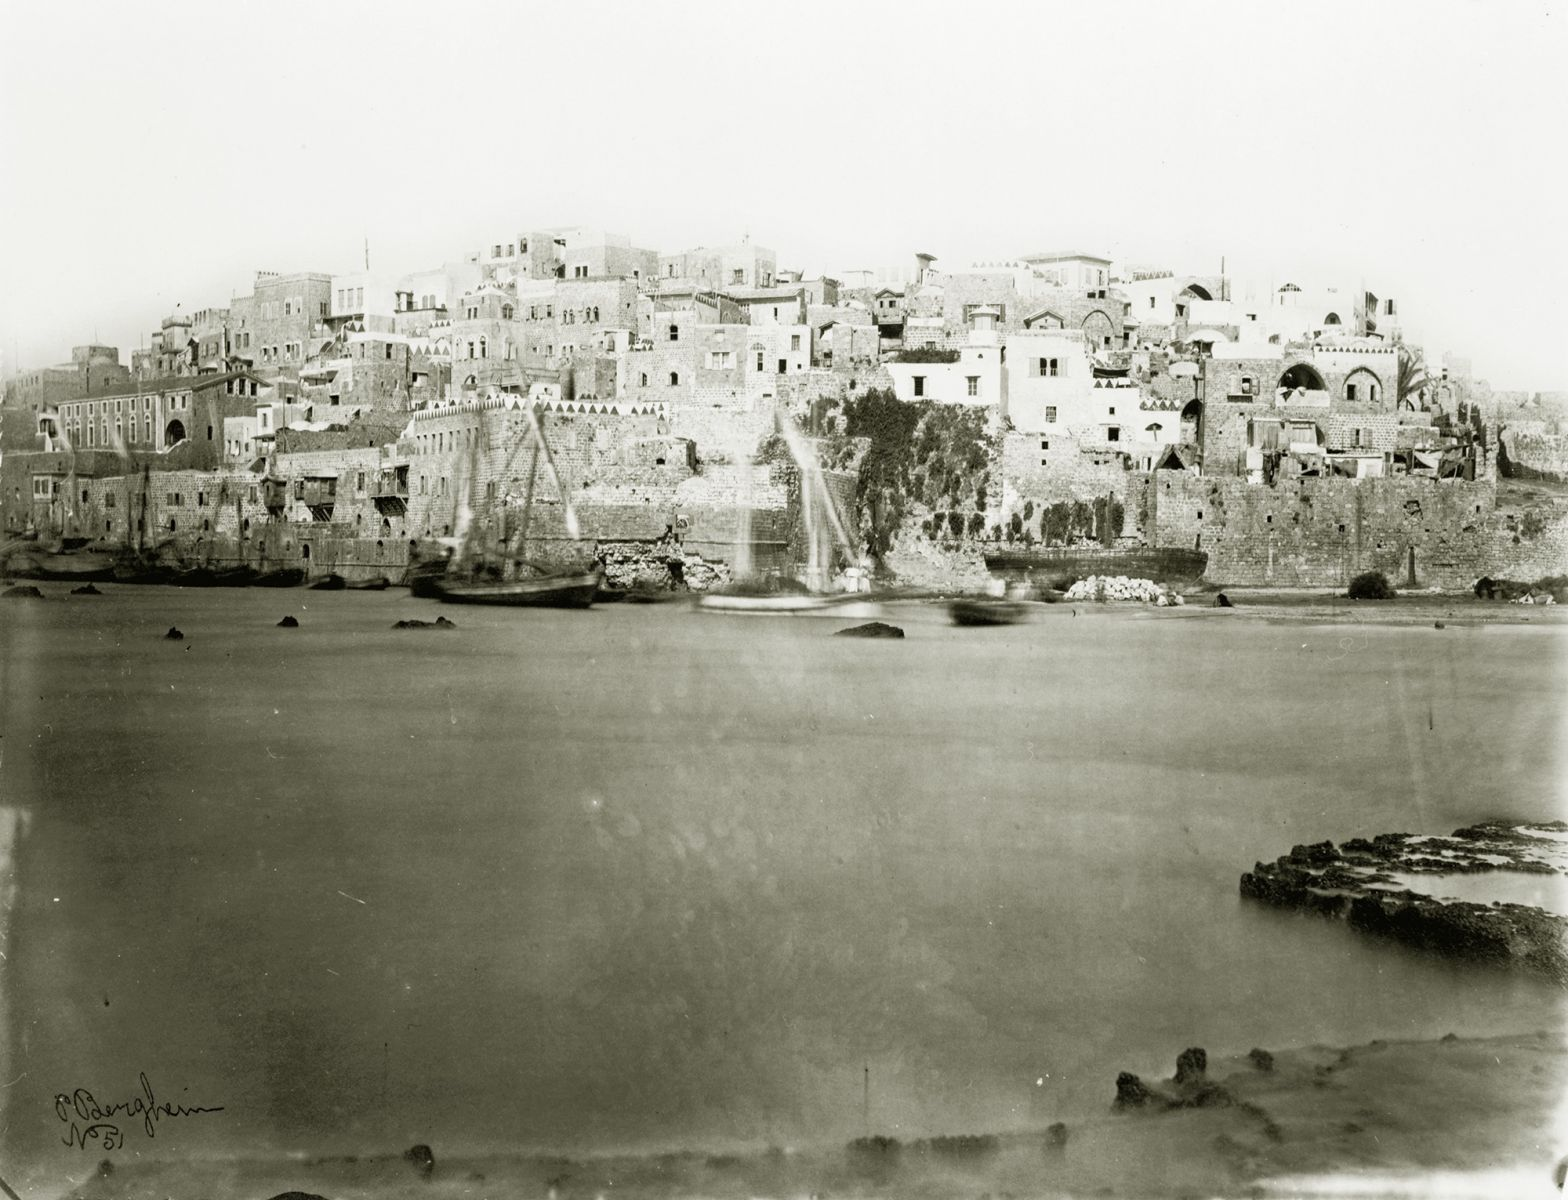 Jaffa from the sea, photograph by P. Bergheim, between 1860 and 1880. Library of Congress